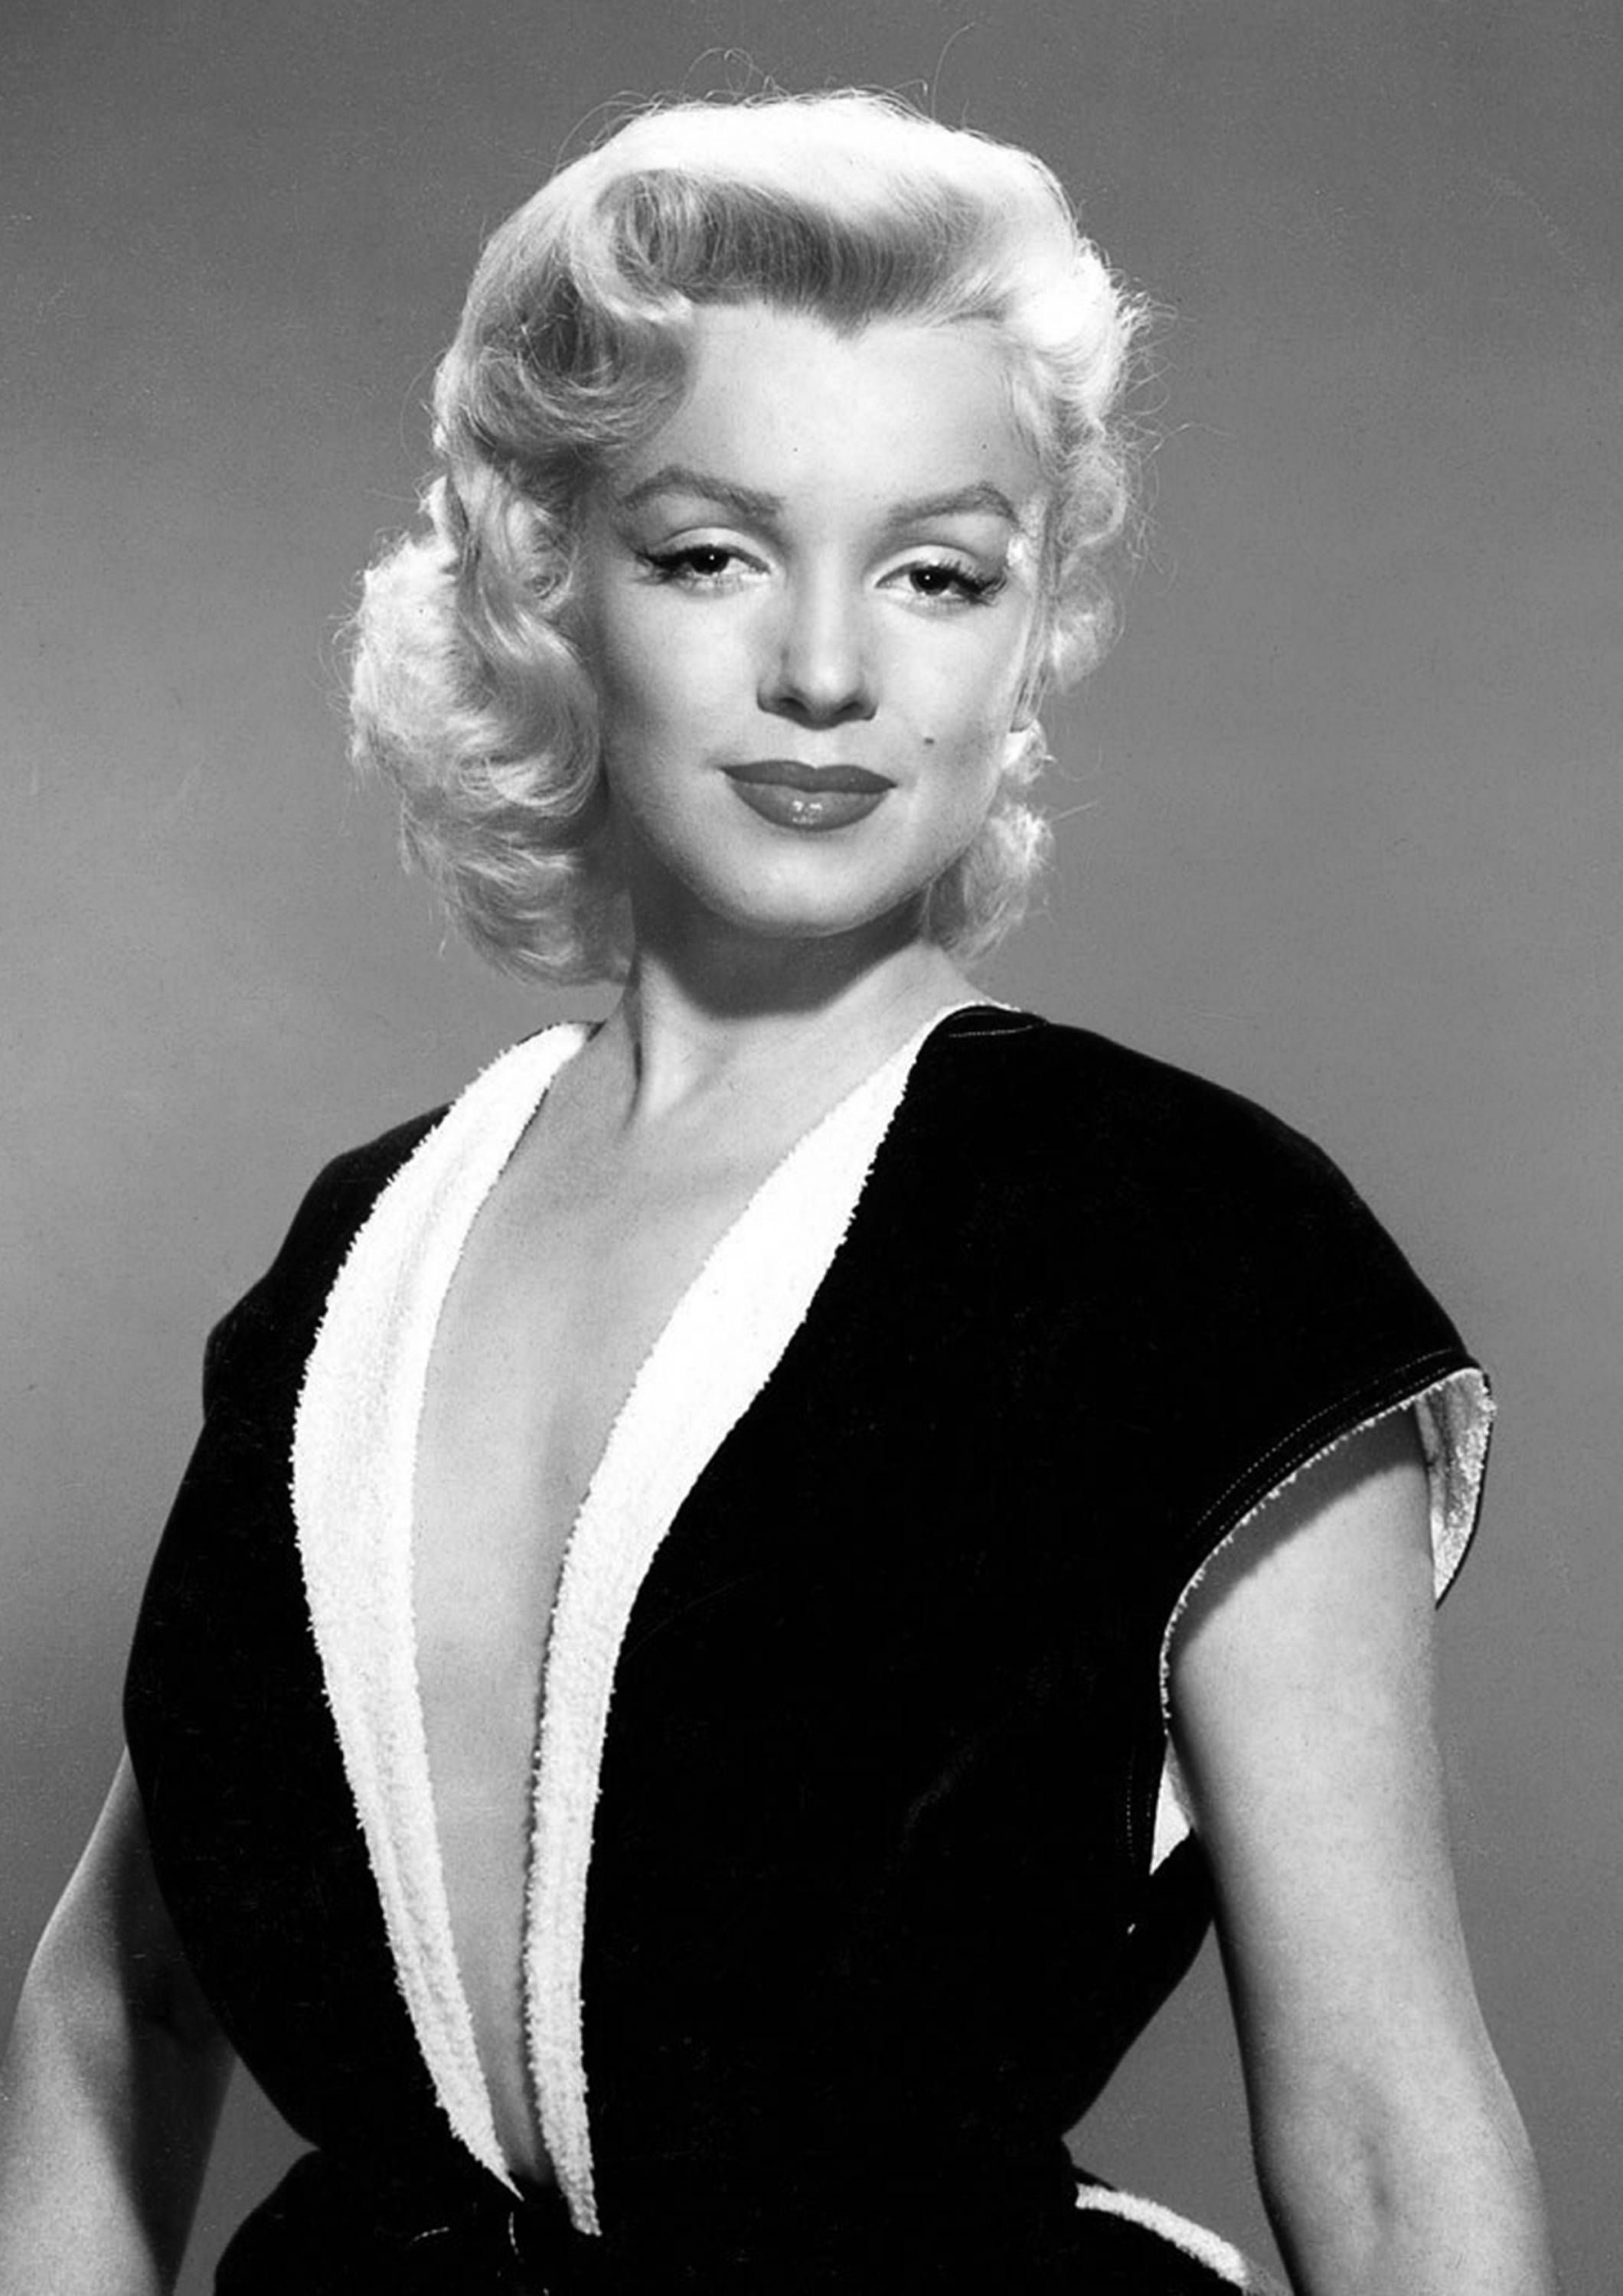 Marilyn Monroe Monochrome Photographic Print 58 (A4 Size - 210mm x ...